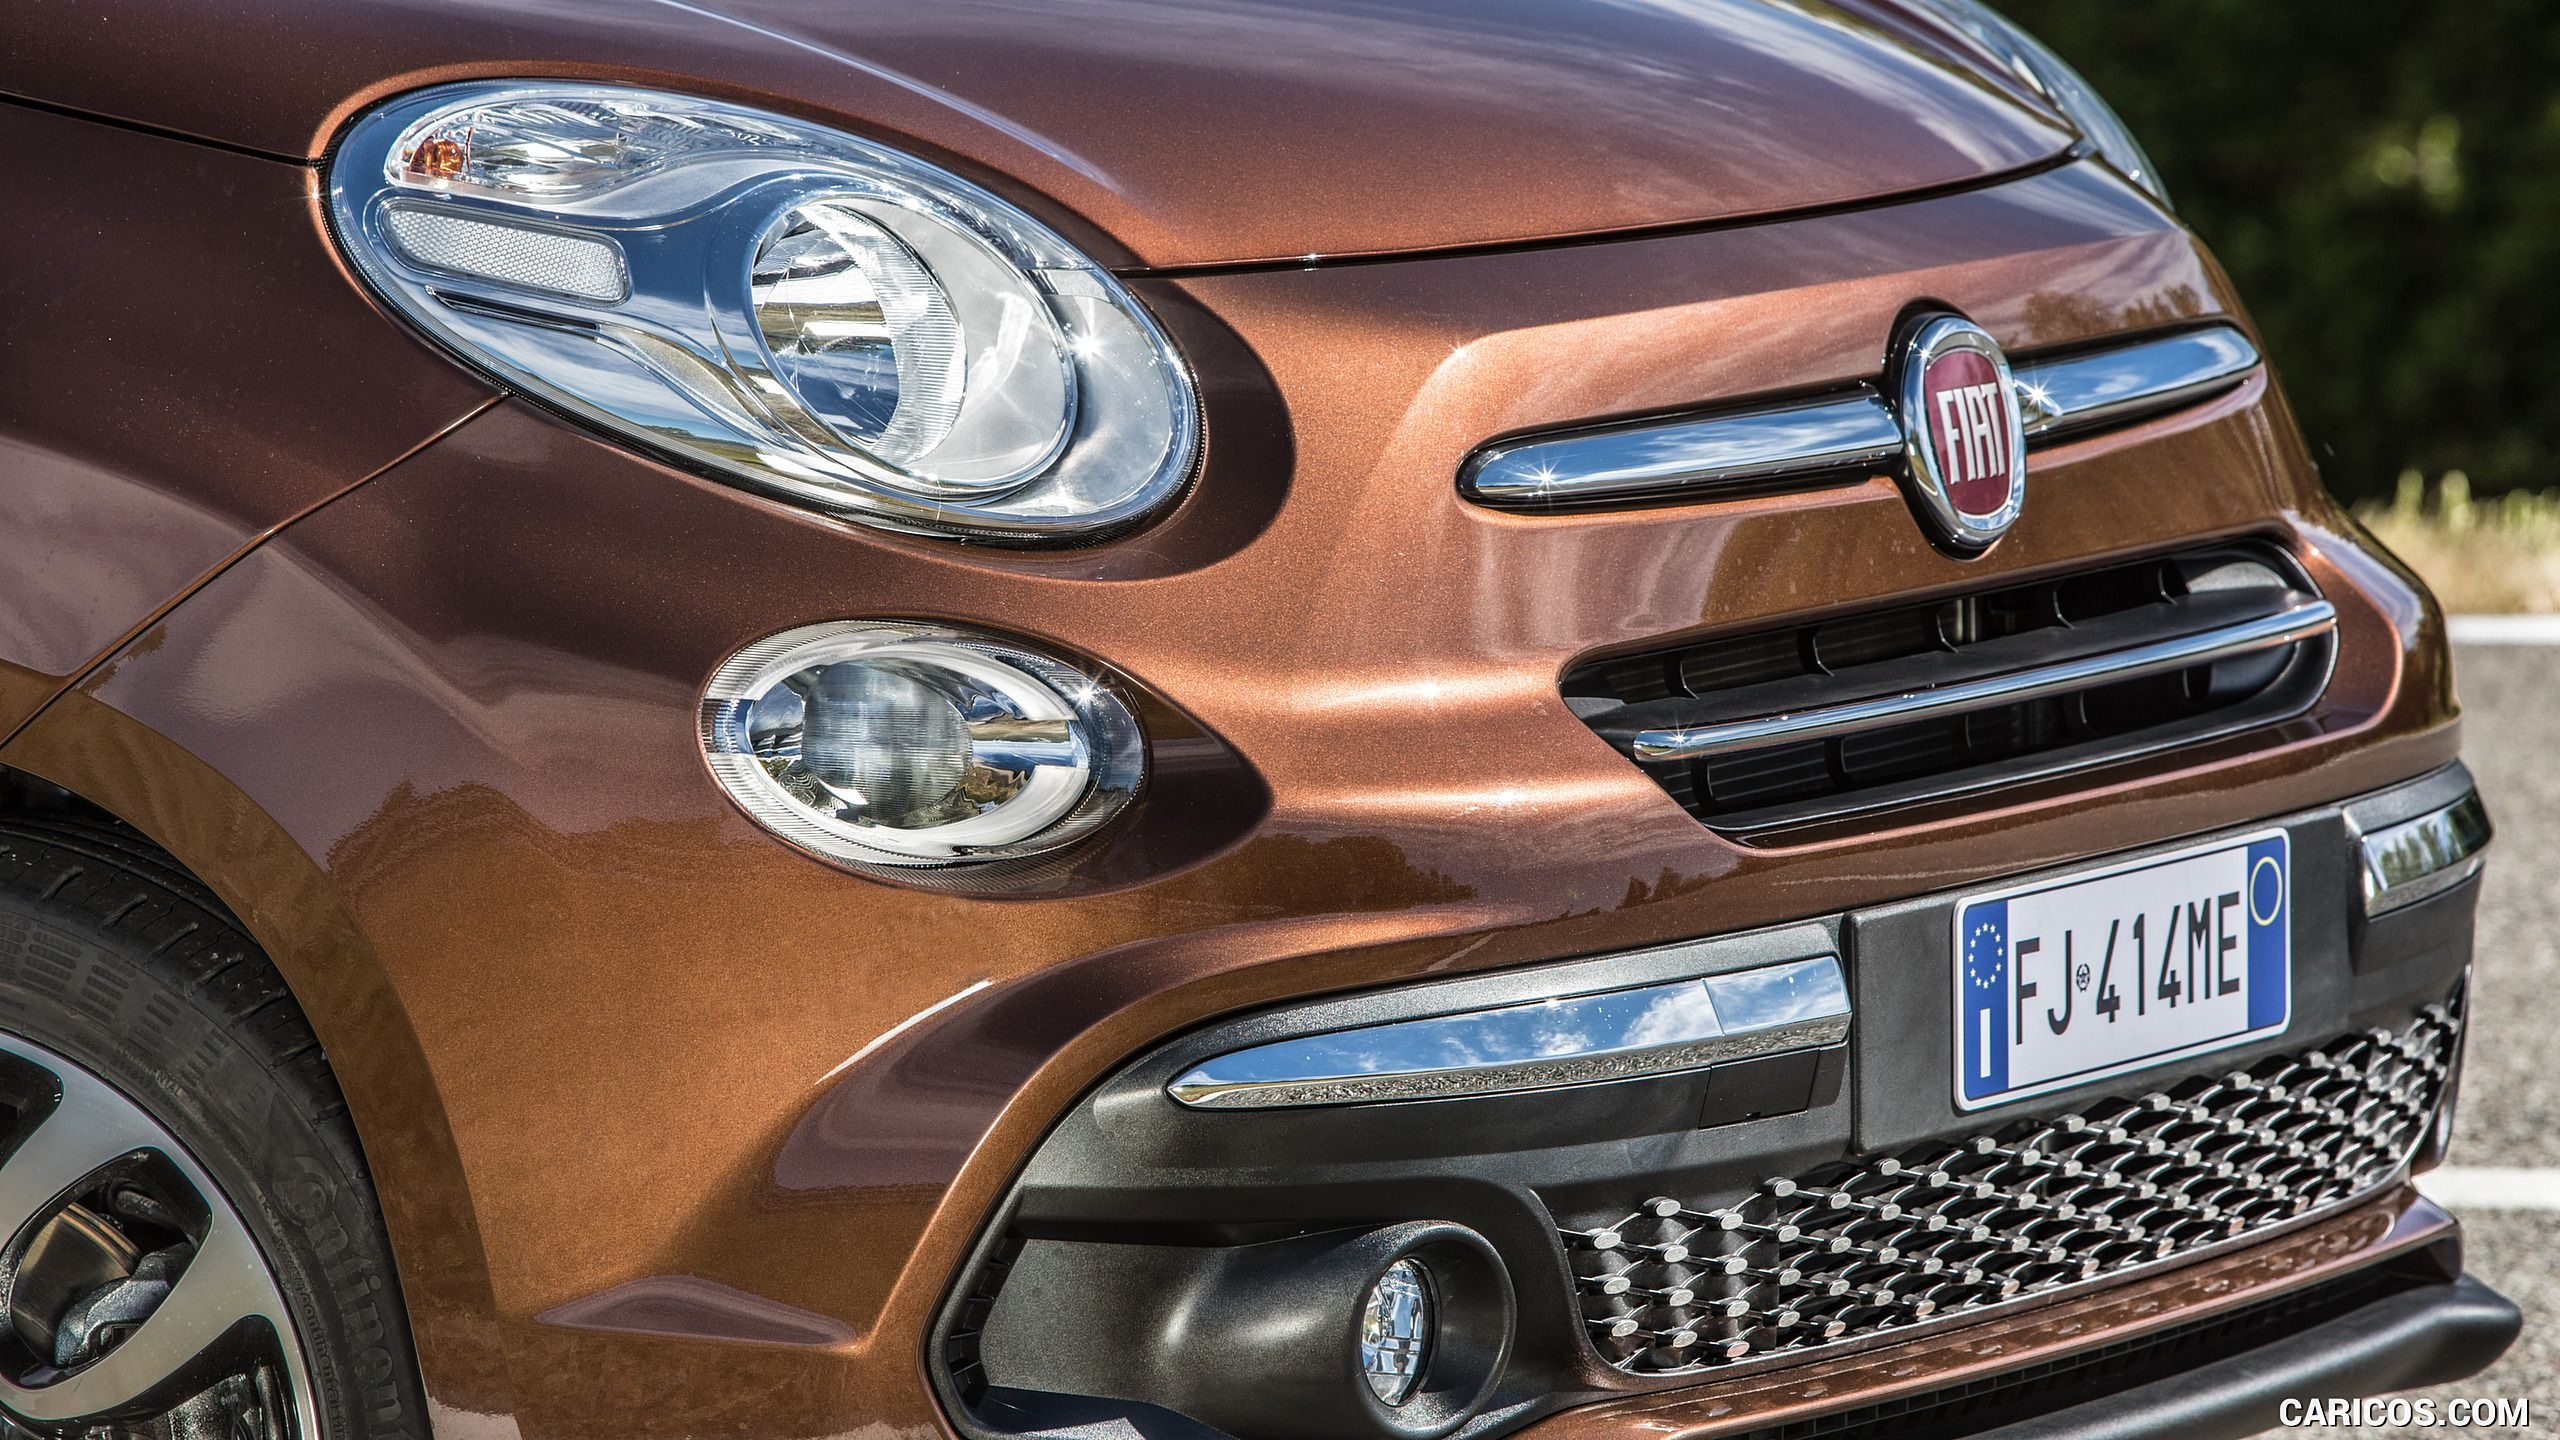 2018 Fiat 500l Urban Cross And Wagon Euro Spec Wallpaper With